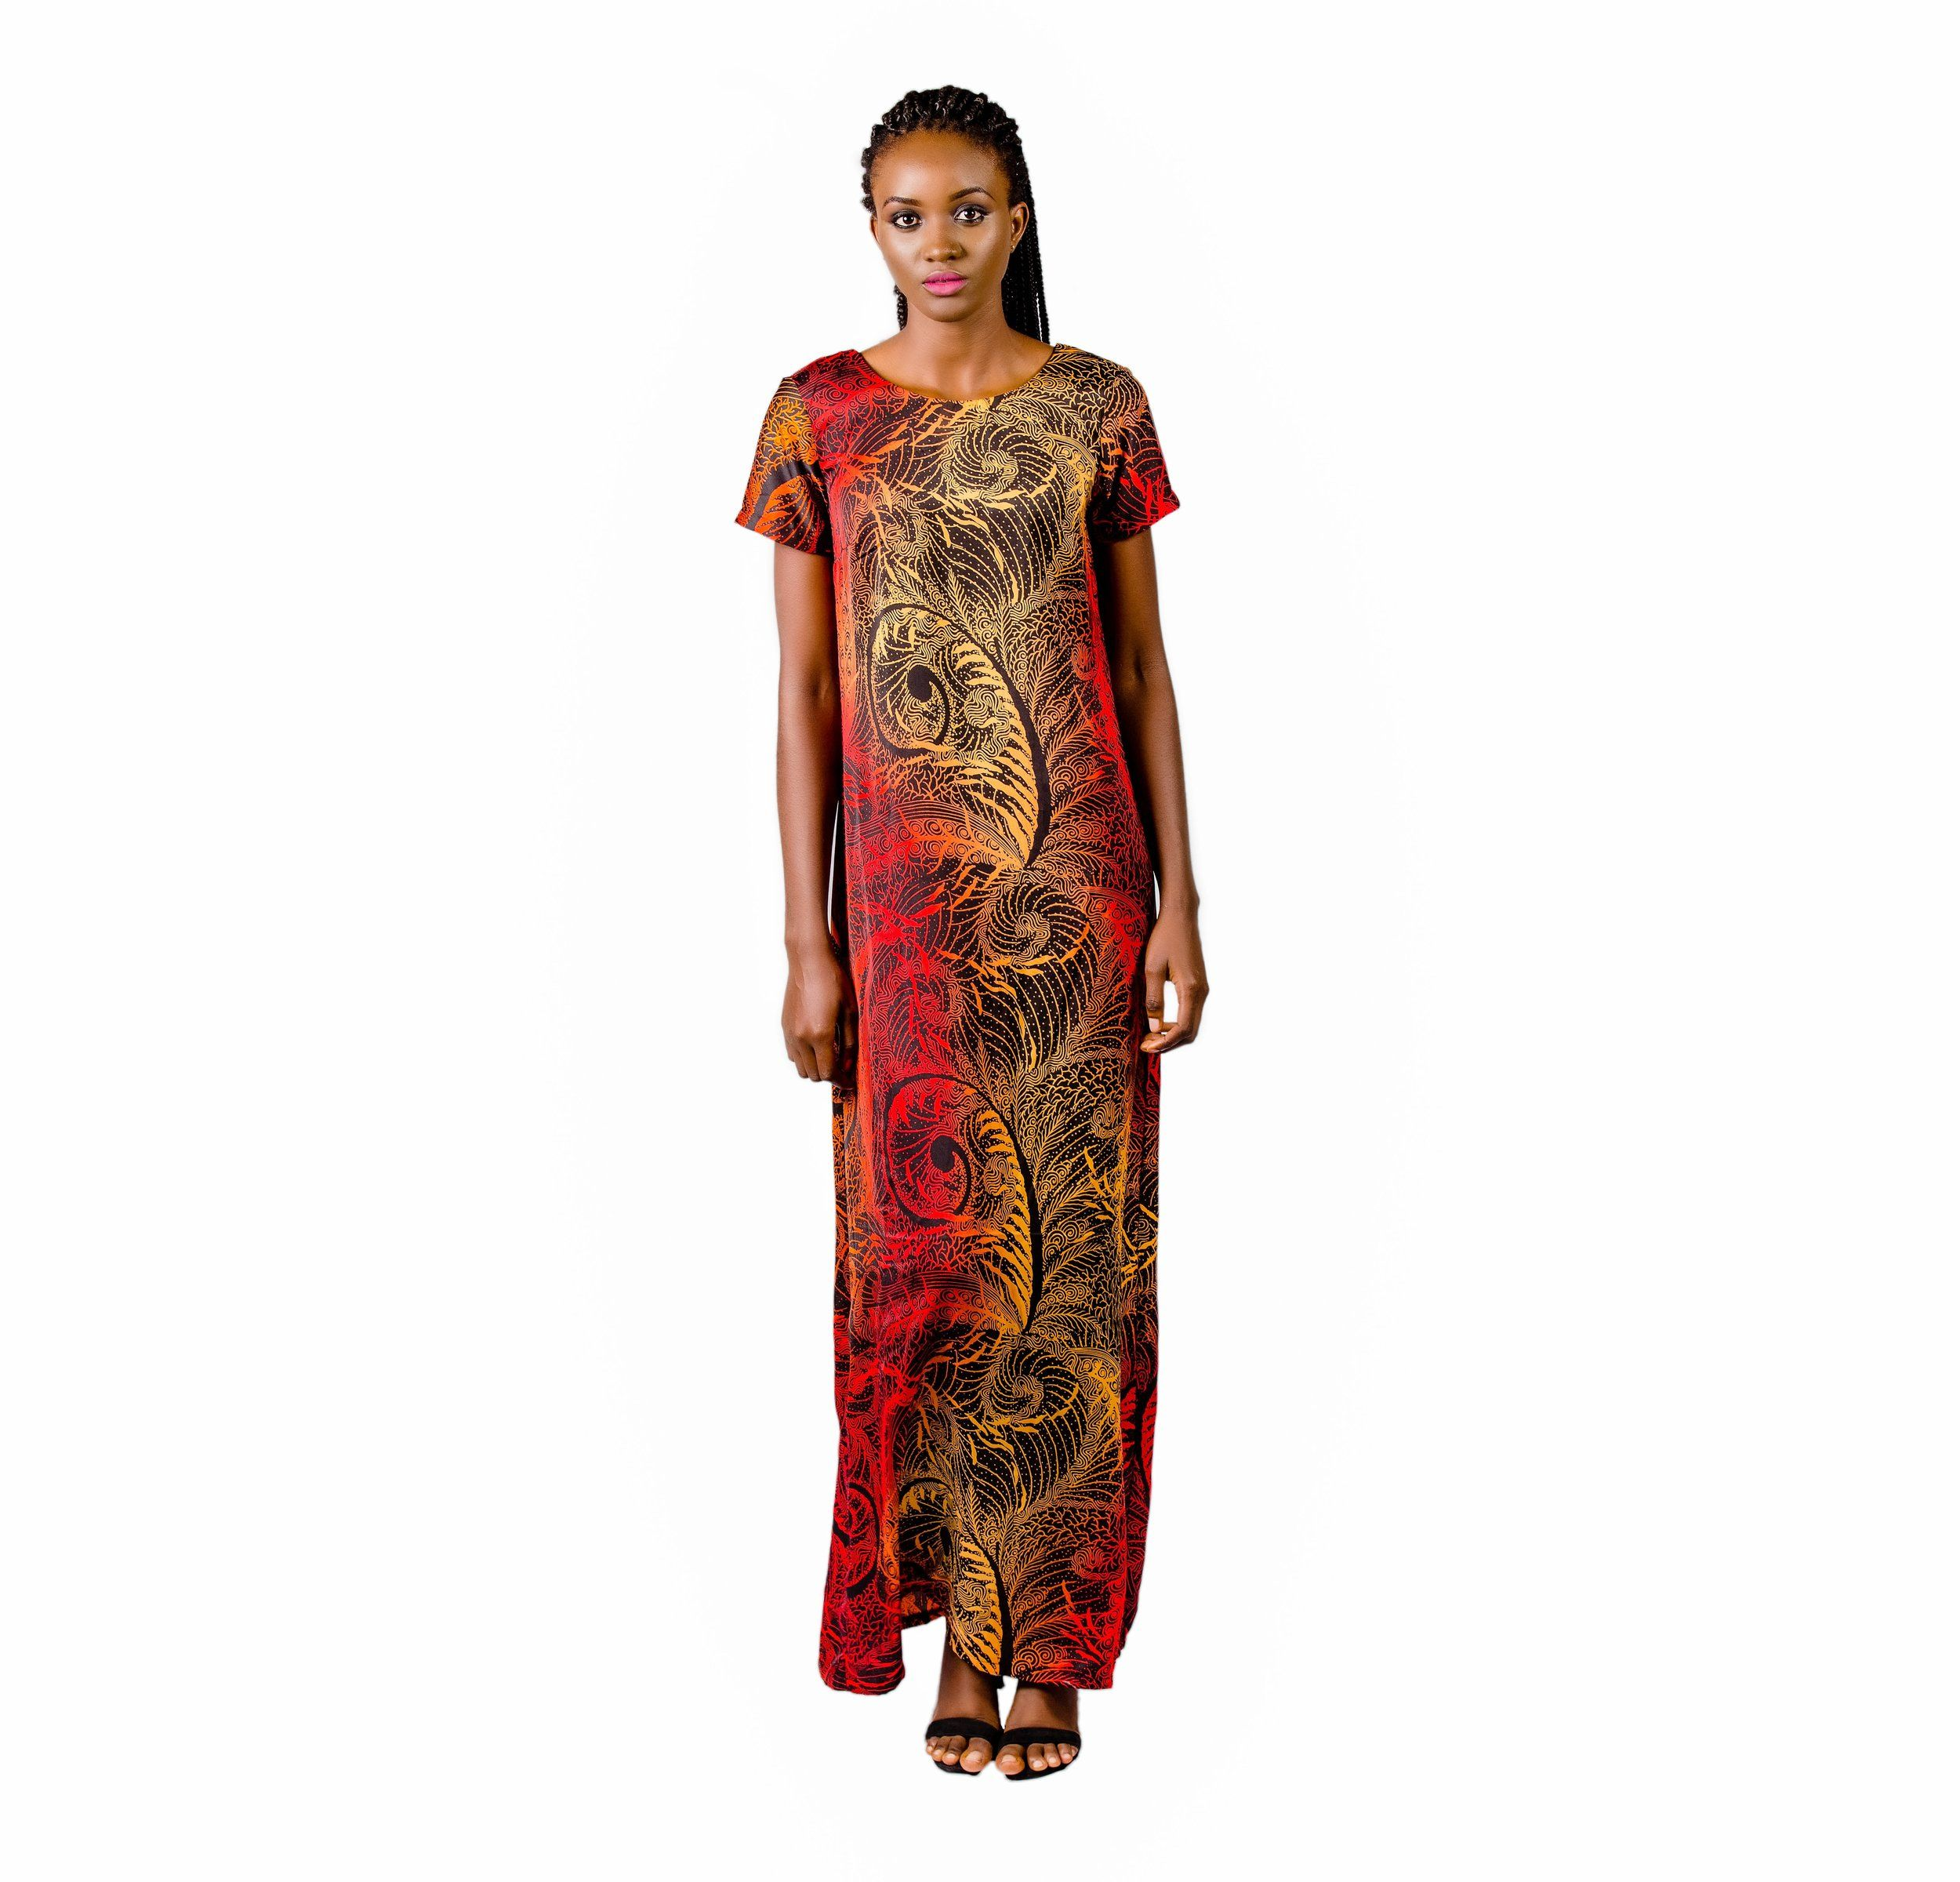 This fiery Silk Bubu dress assures a